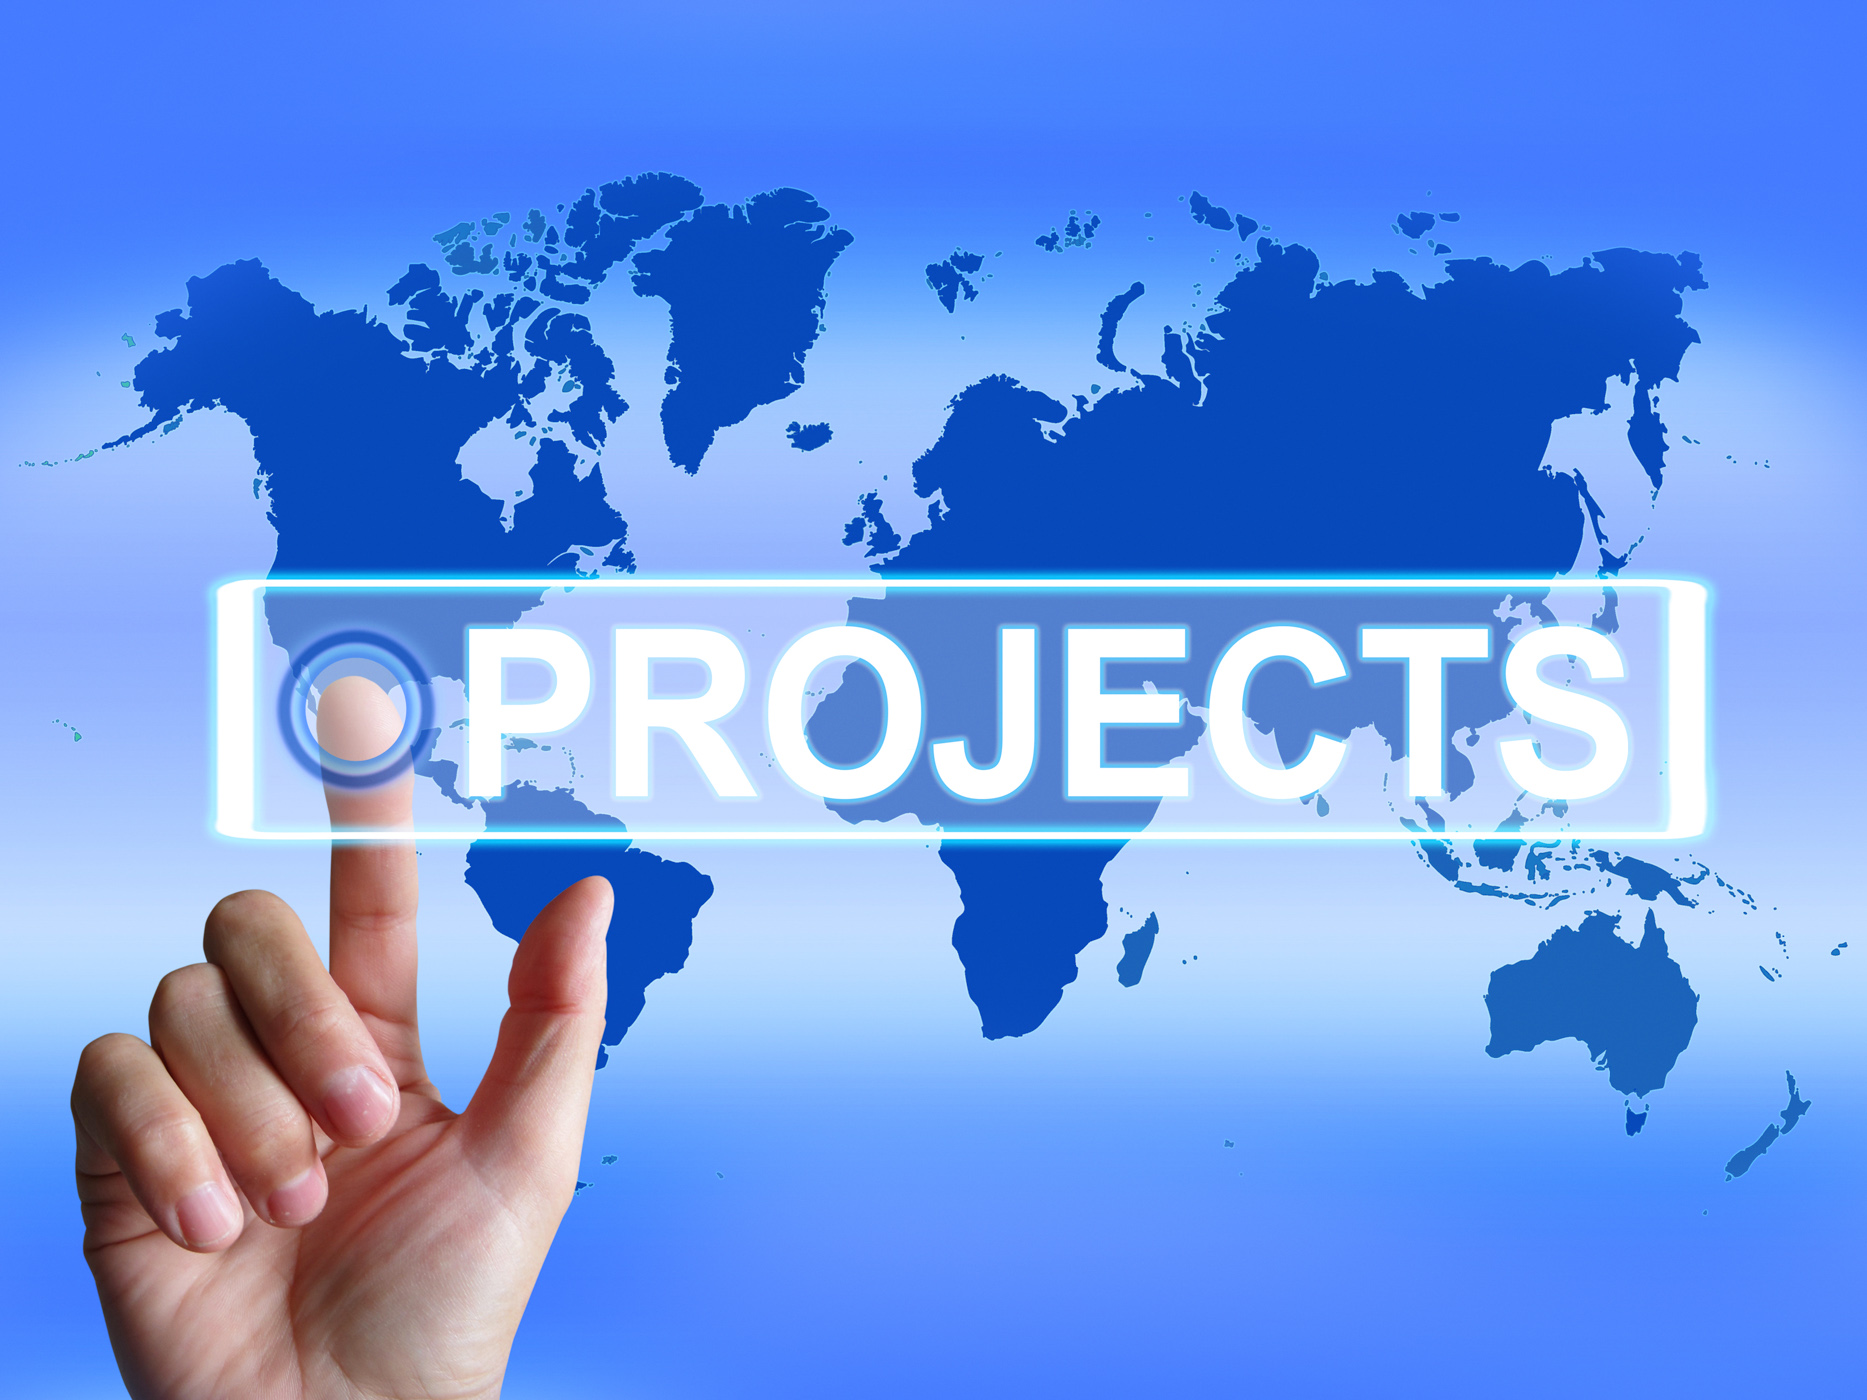 Projects map indicates international or internet task or activity photo